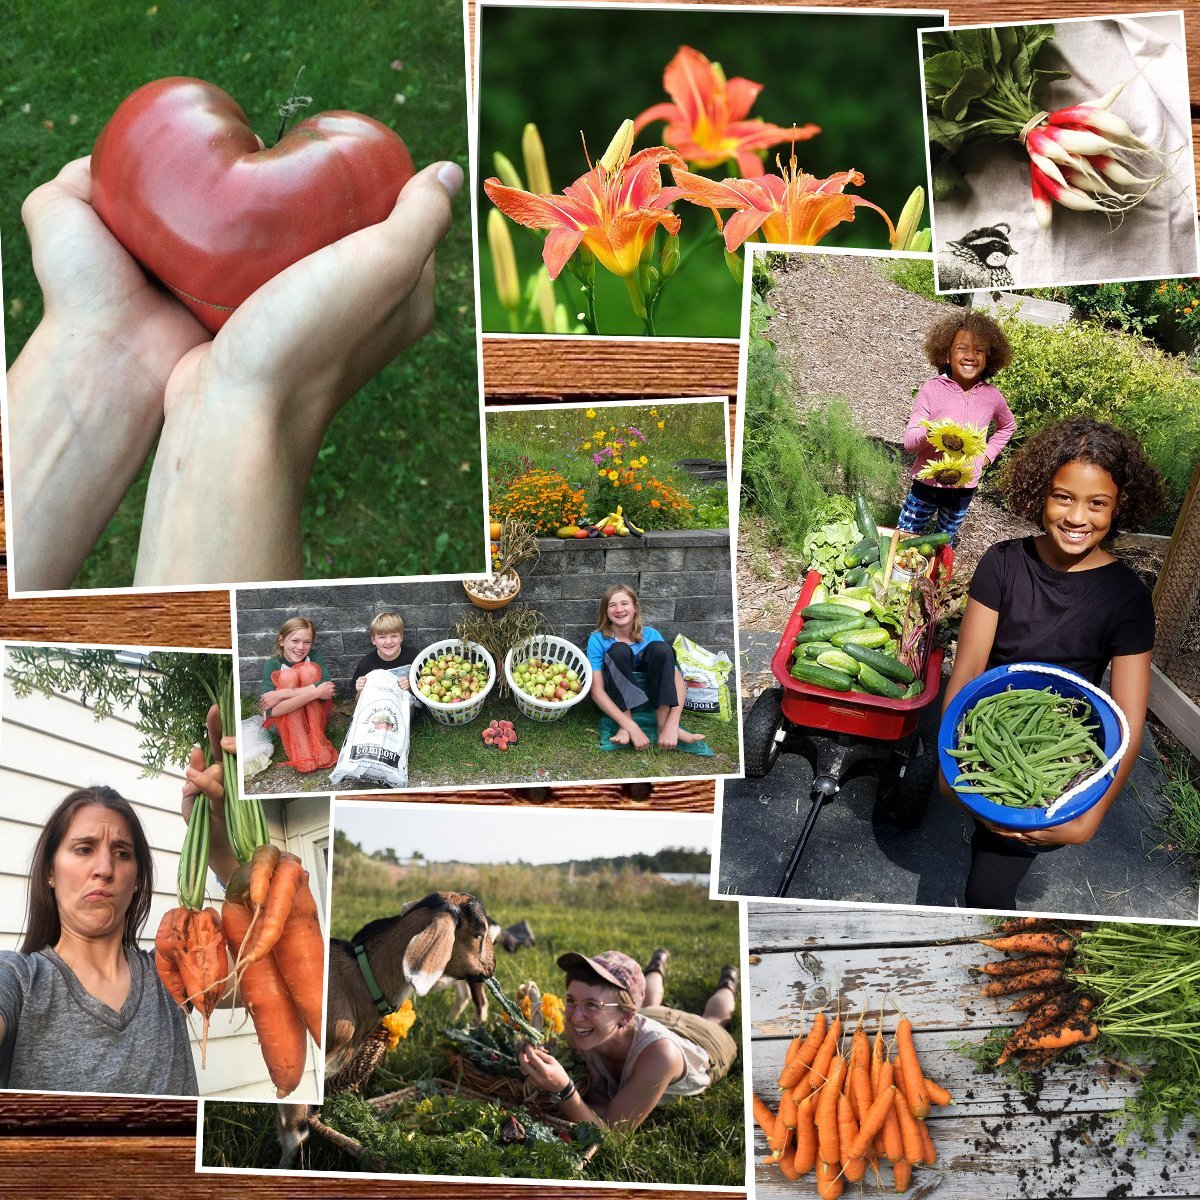 Photo collage of vegetables, flowers, and people.